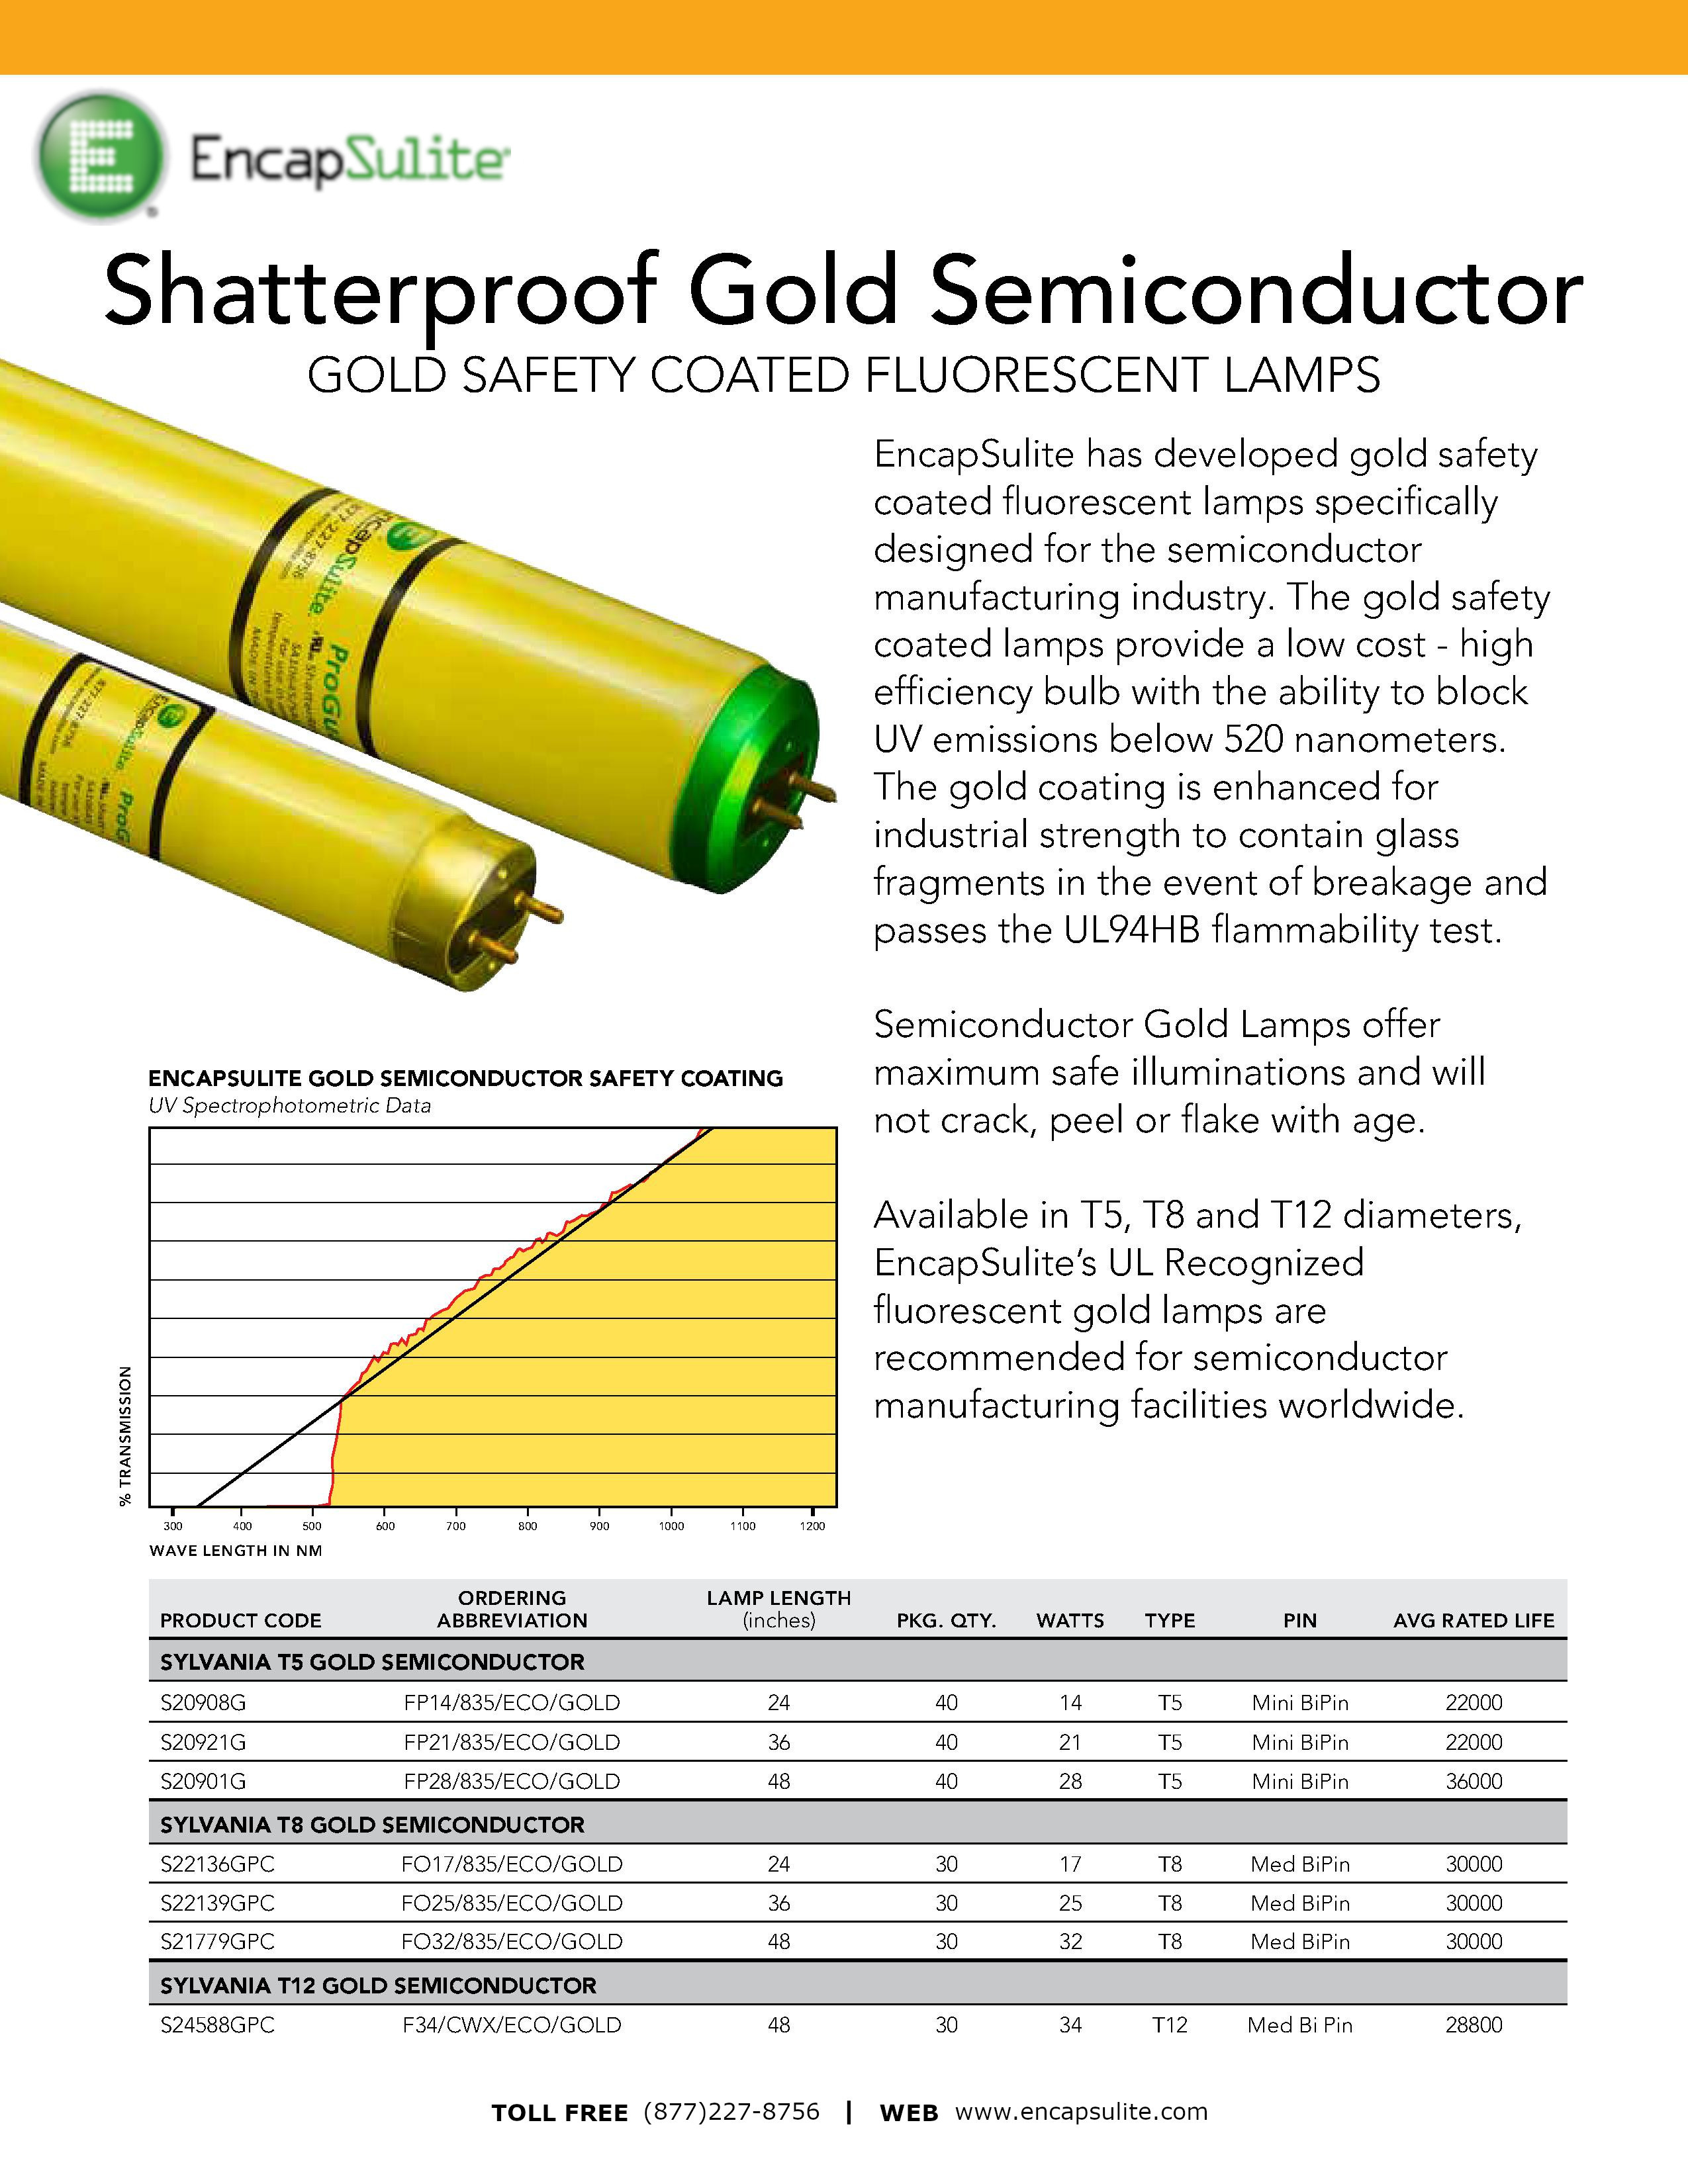 Shatterproof Gold Semiconductor Lighting